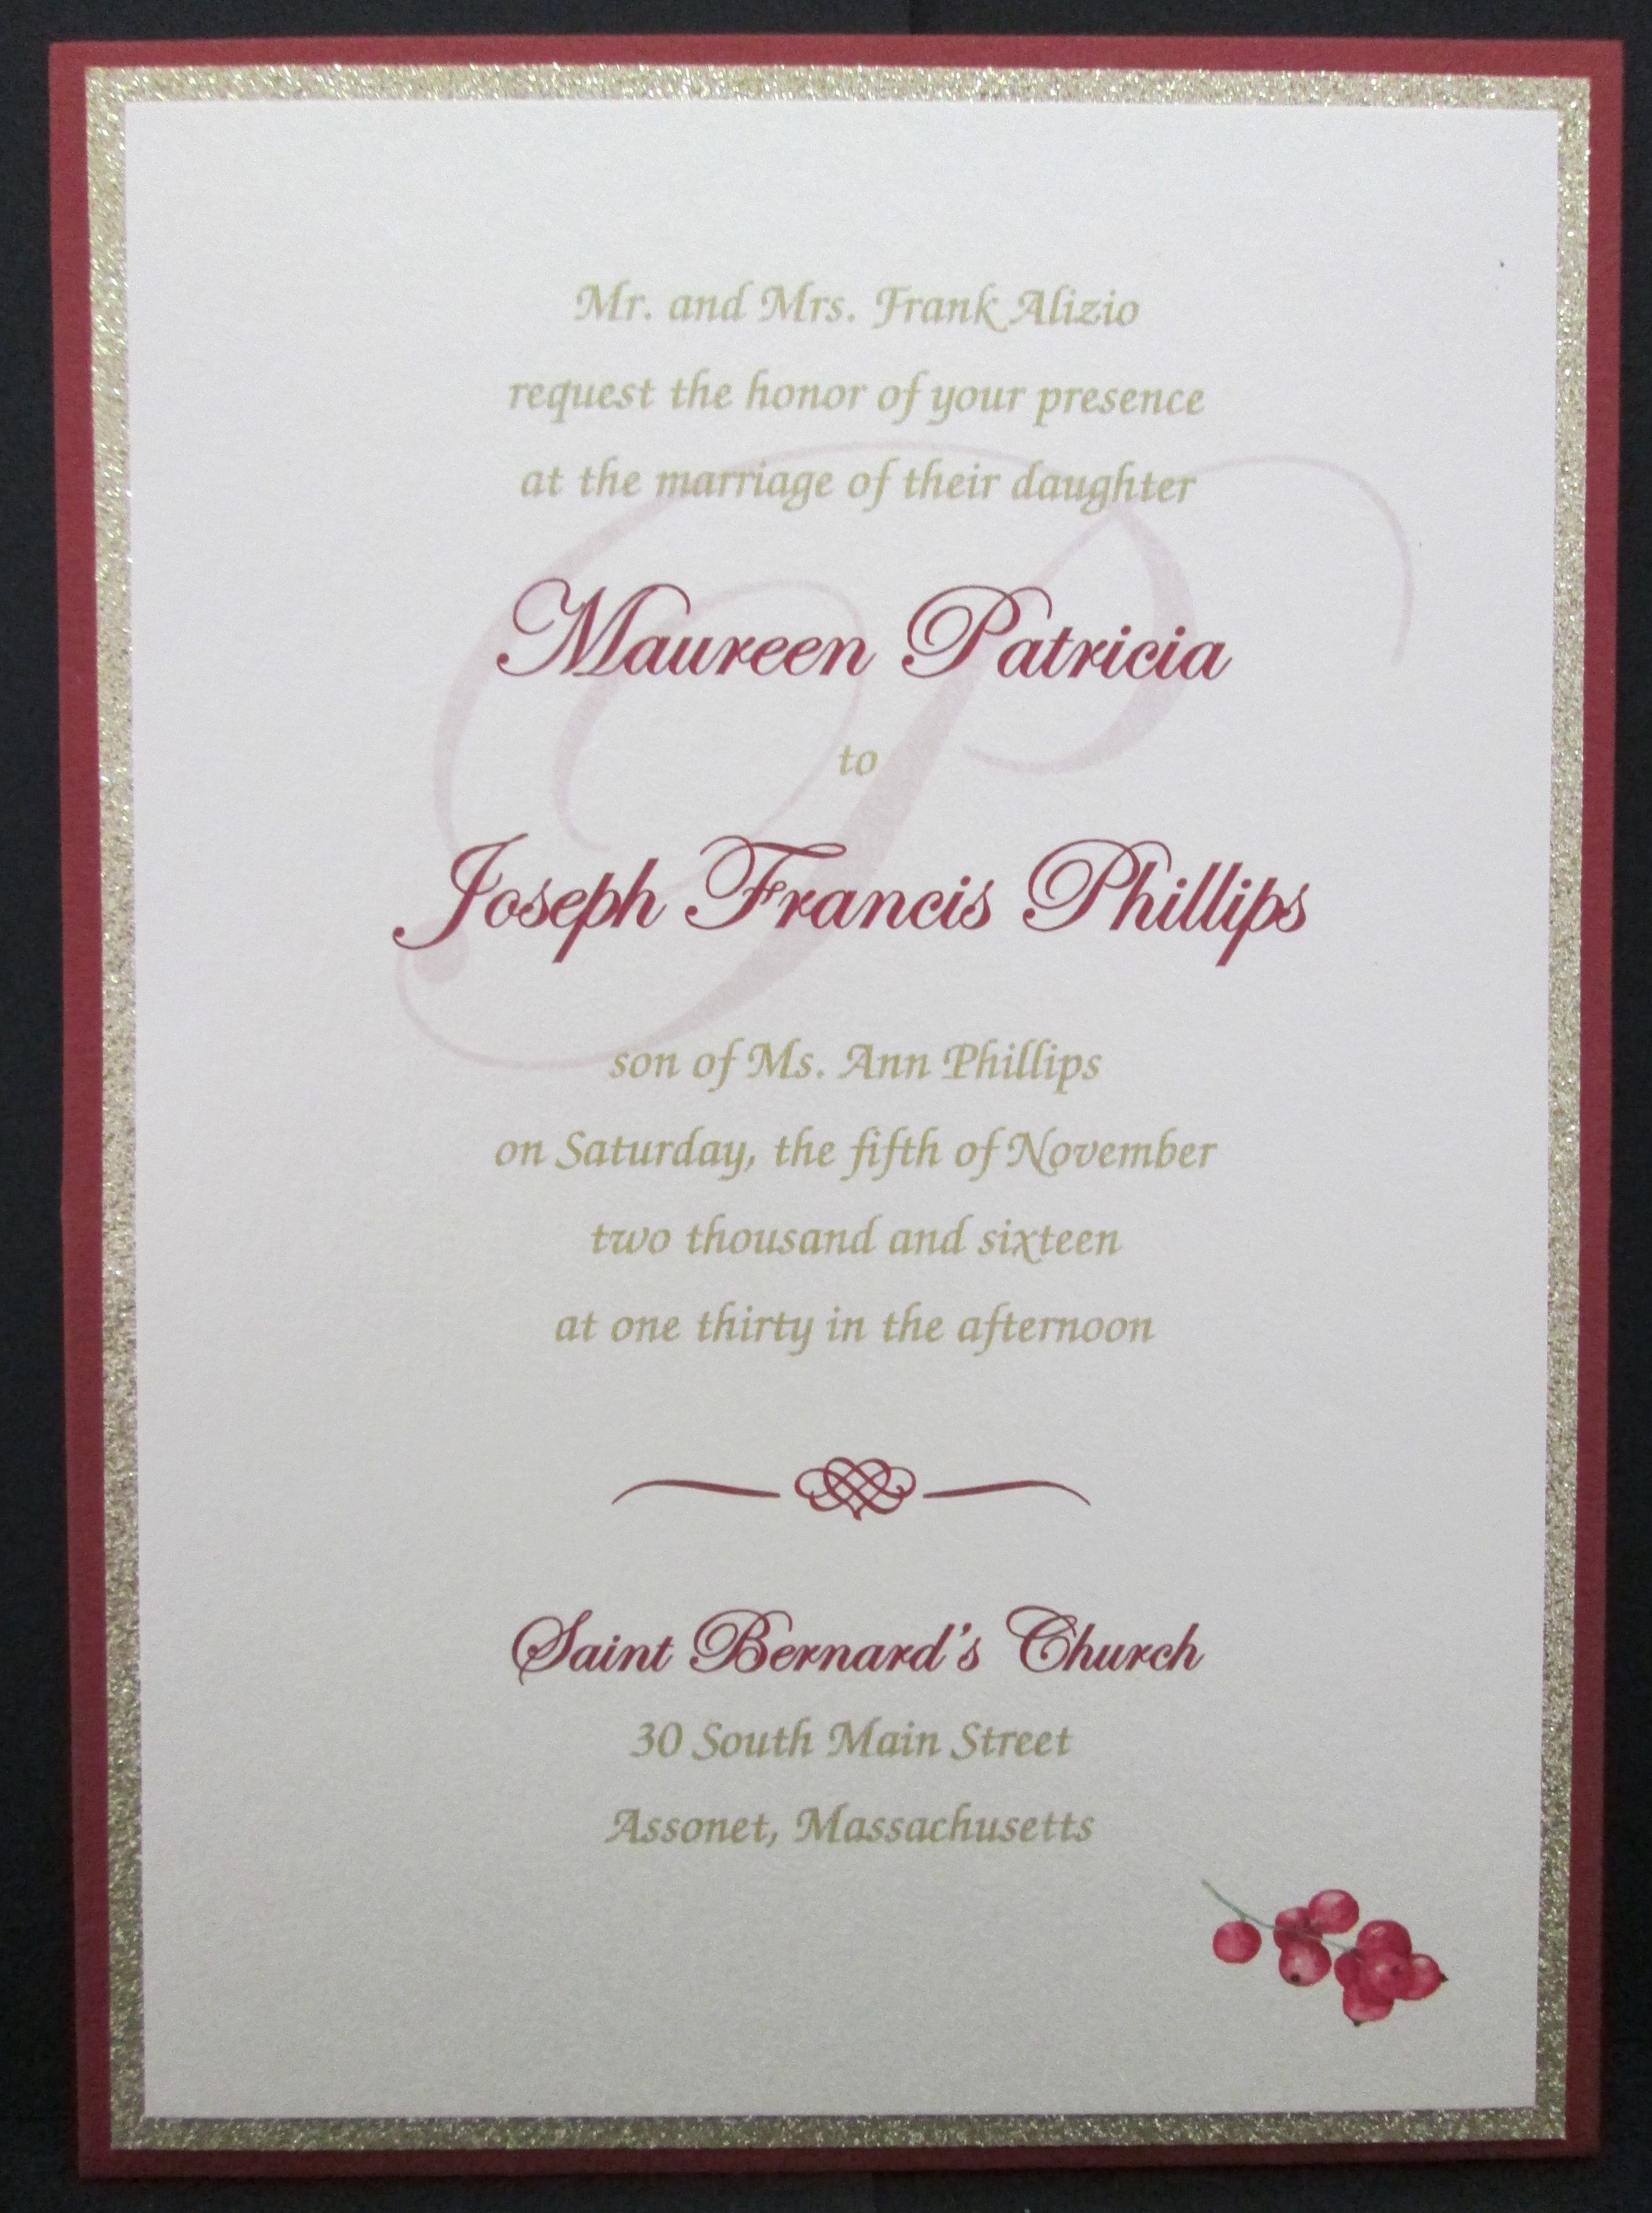 Wedding Invitations With Watermark Wedding Invitations Pinterest